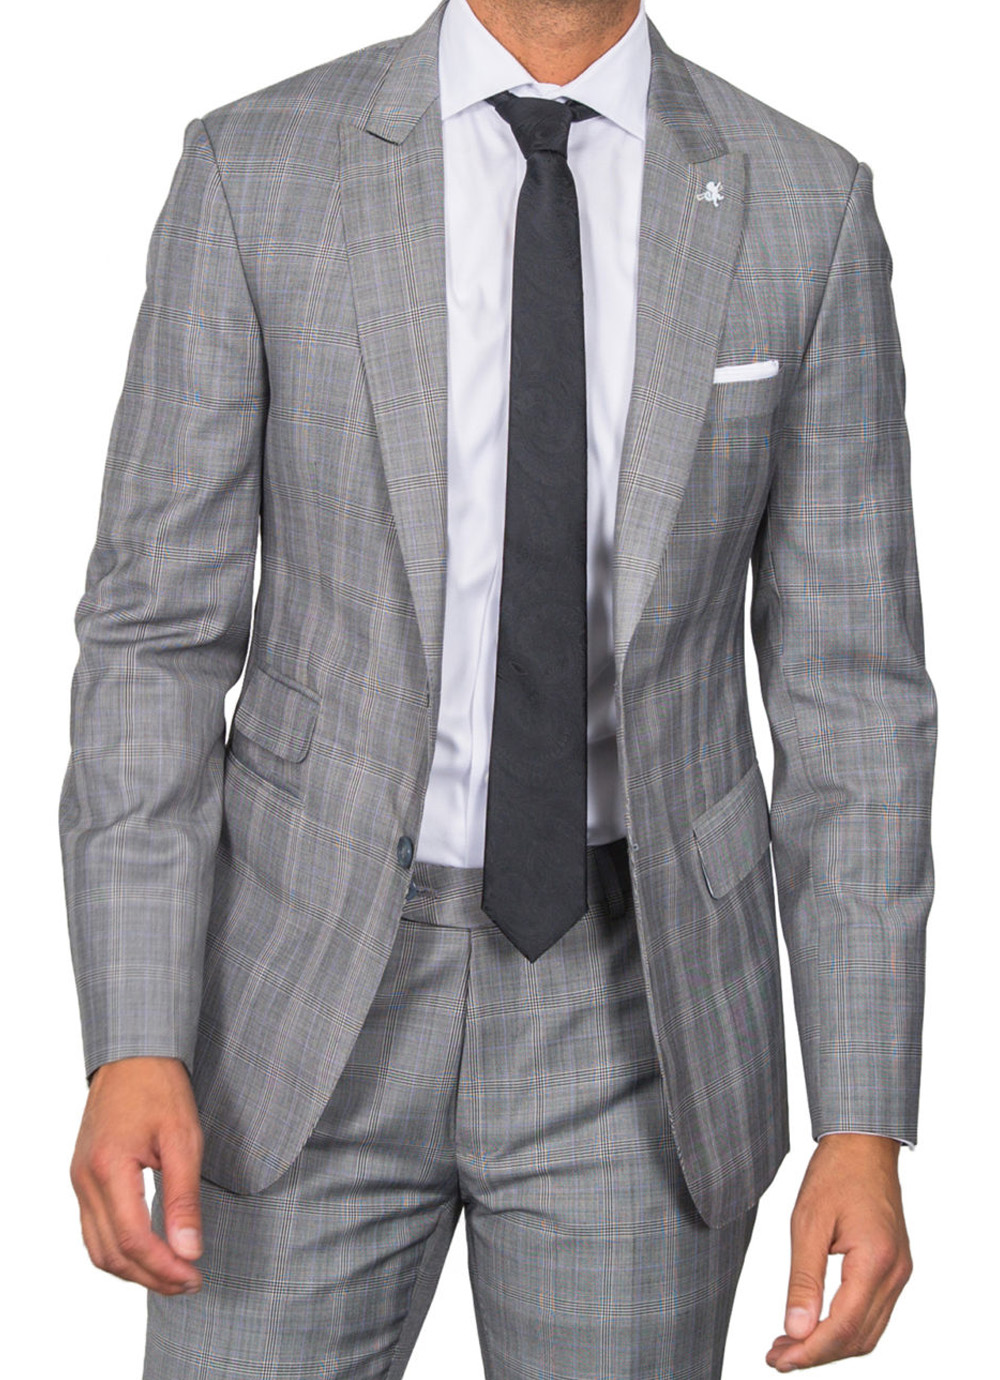 classic-pewter-pinstripe